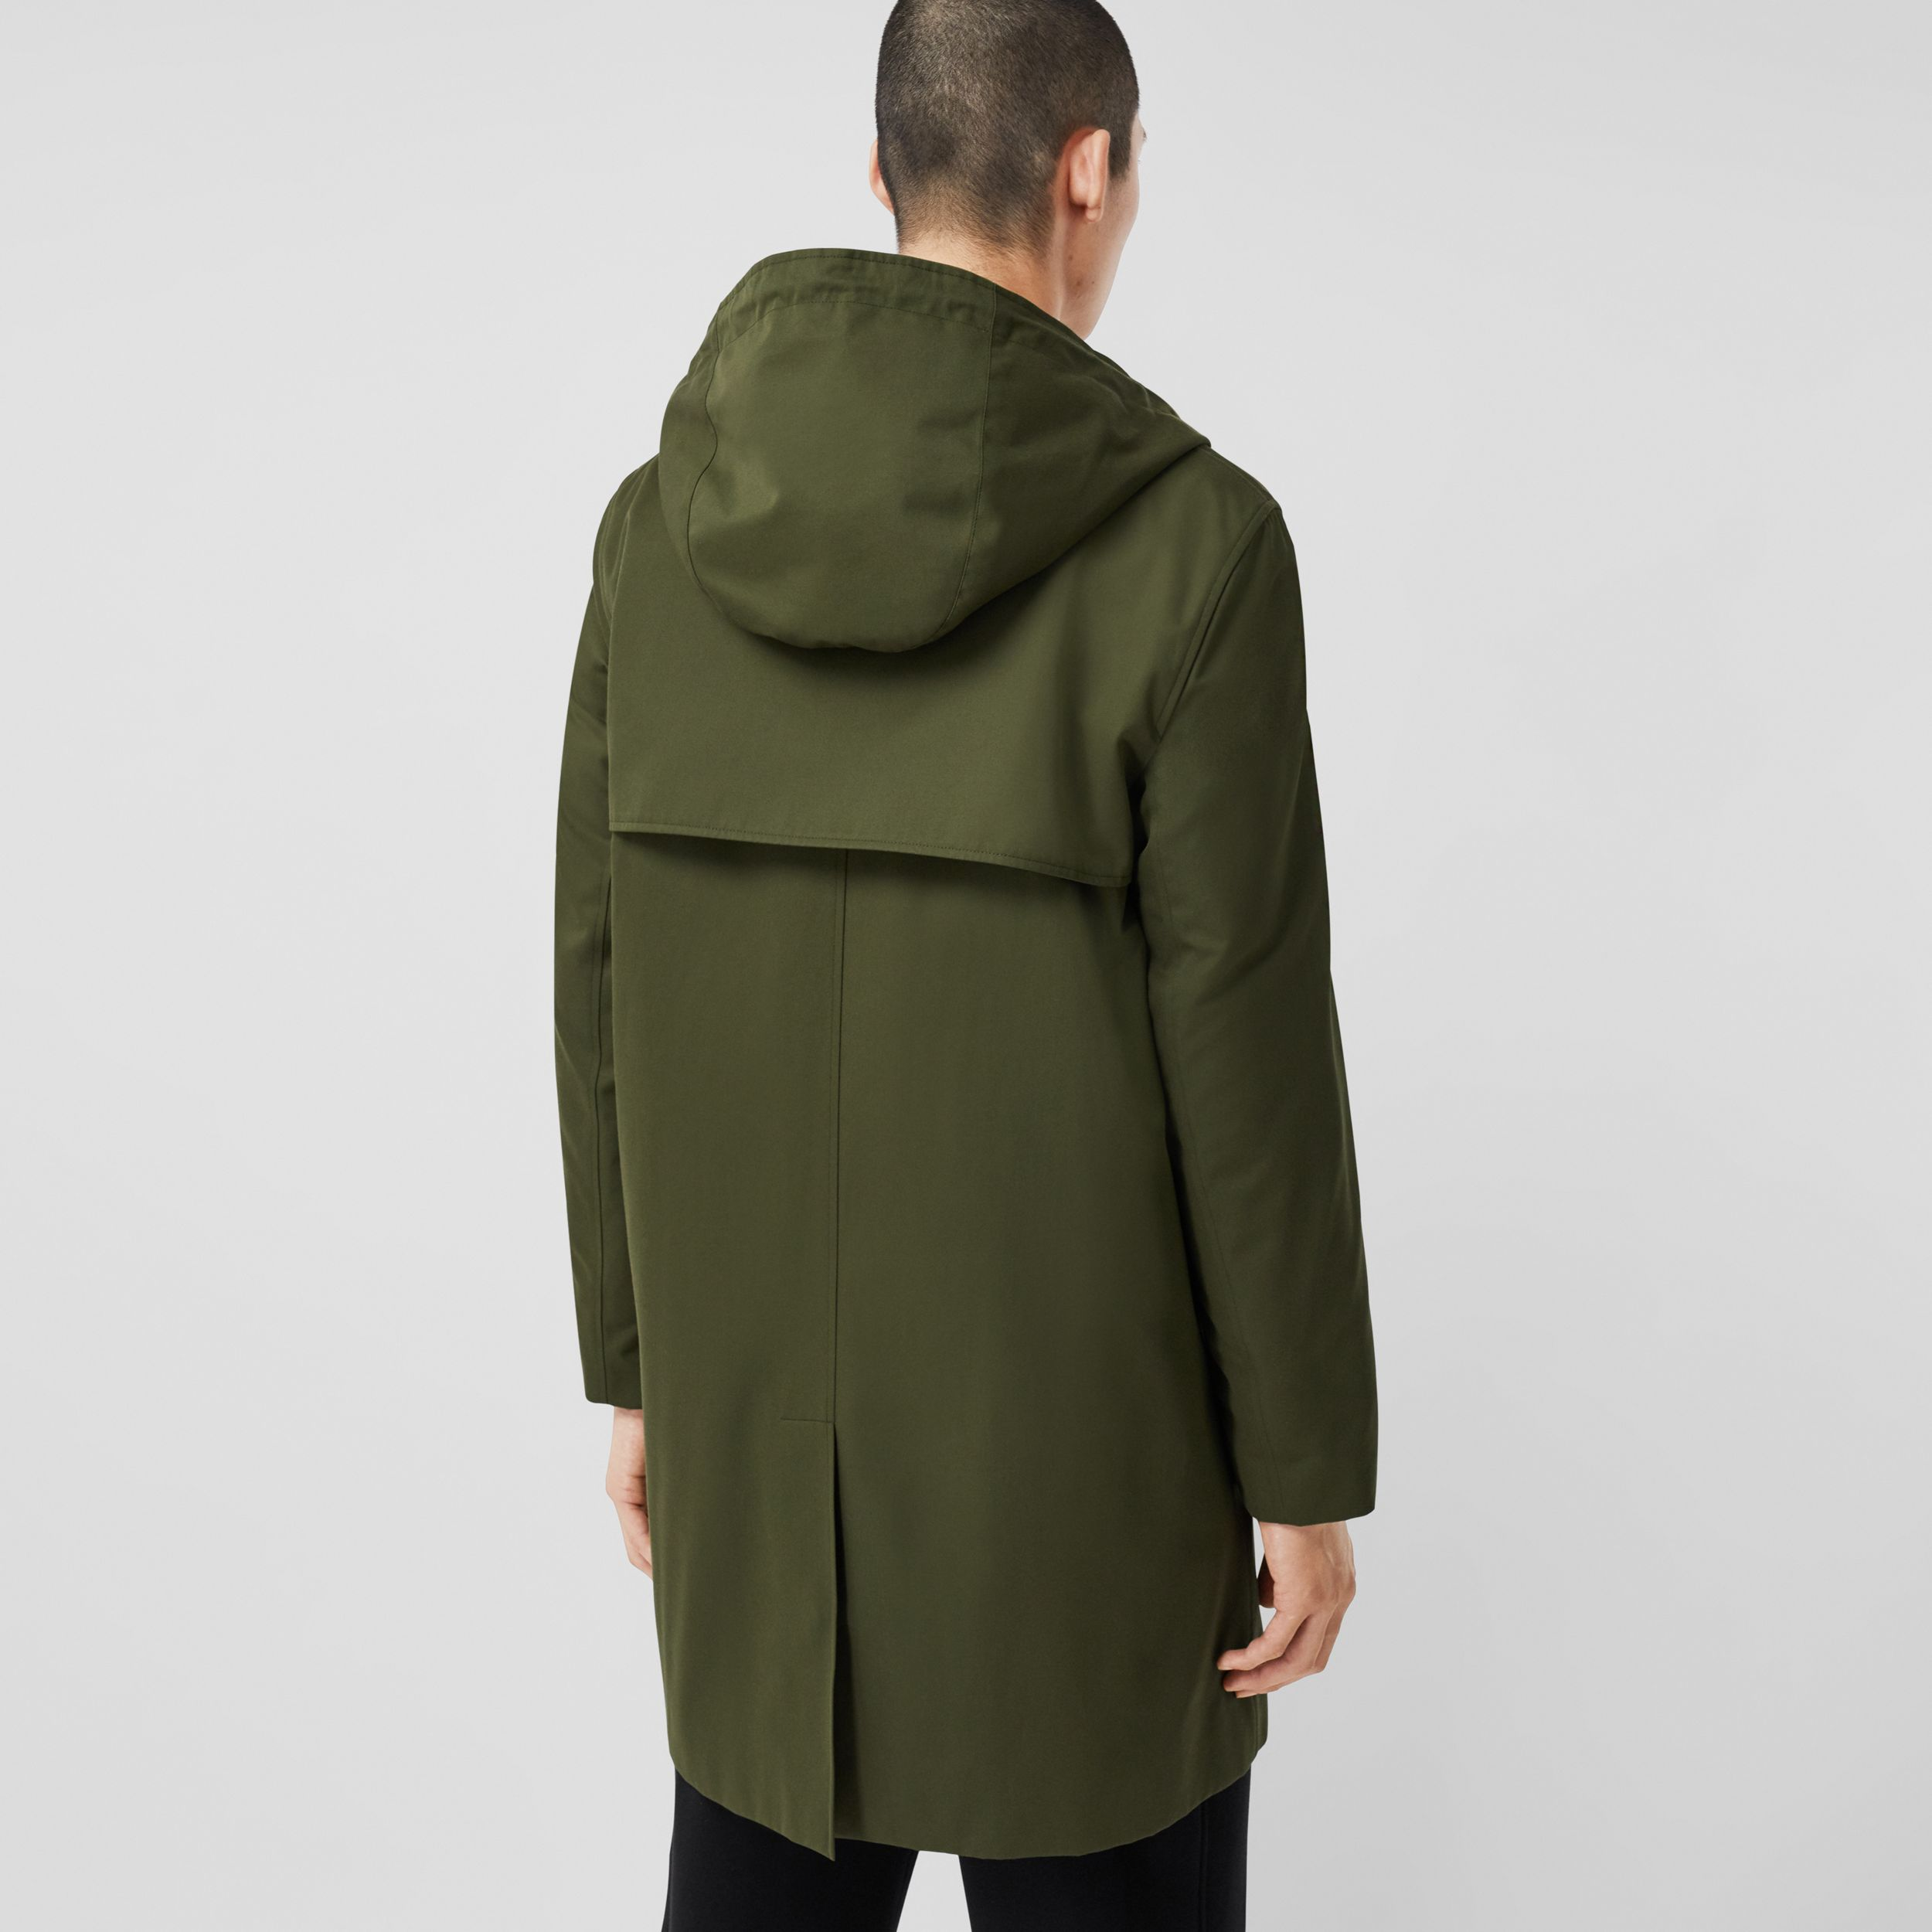 Cotton Gabardine Hooded Coat in Dark Olive Green - Men | Burberry Hong Kong S.A.R. - 3